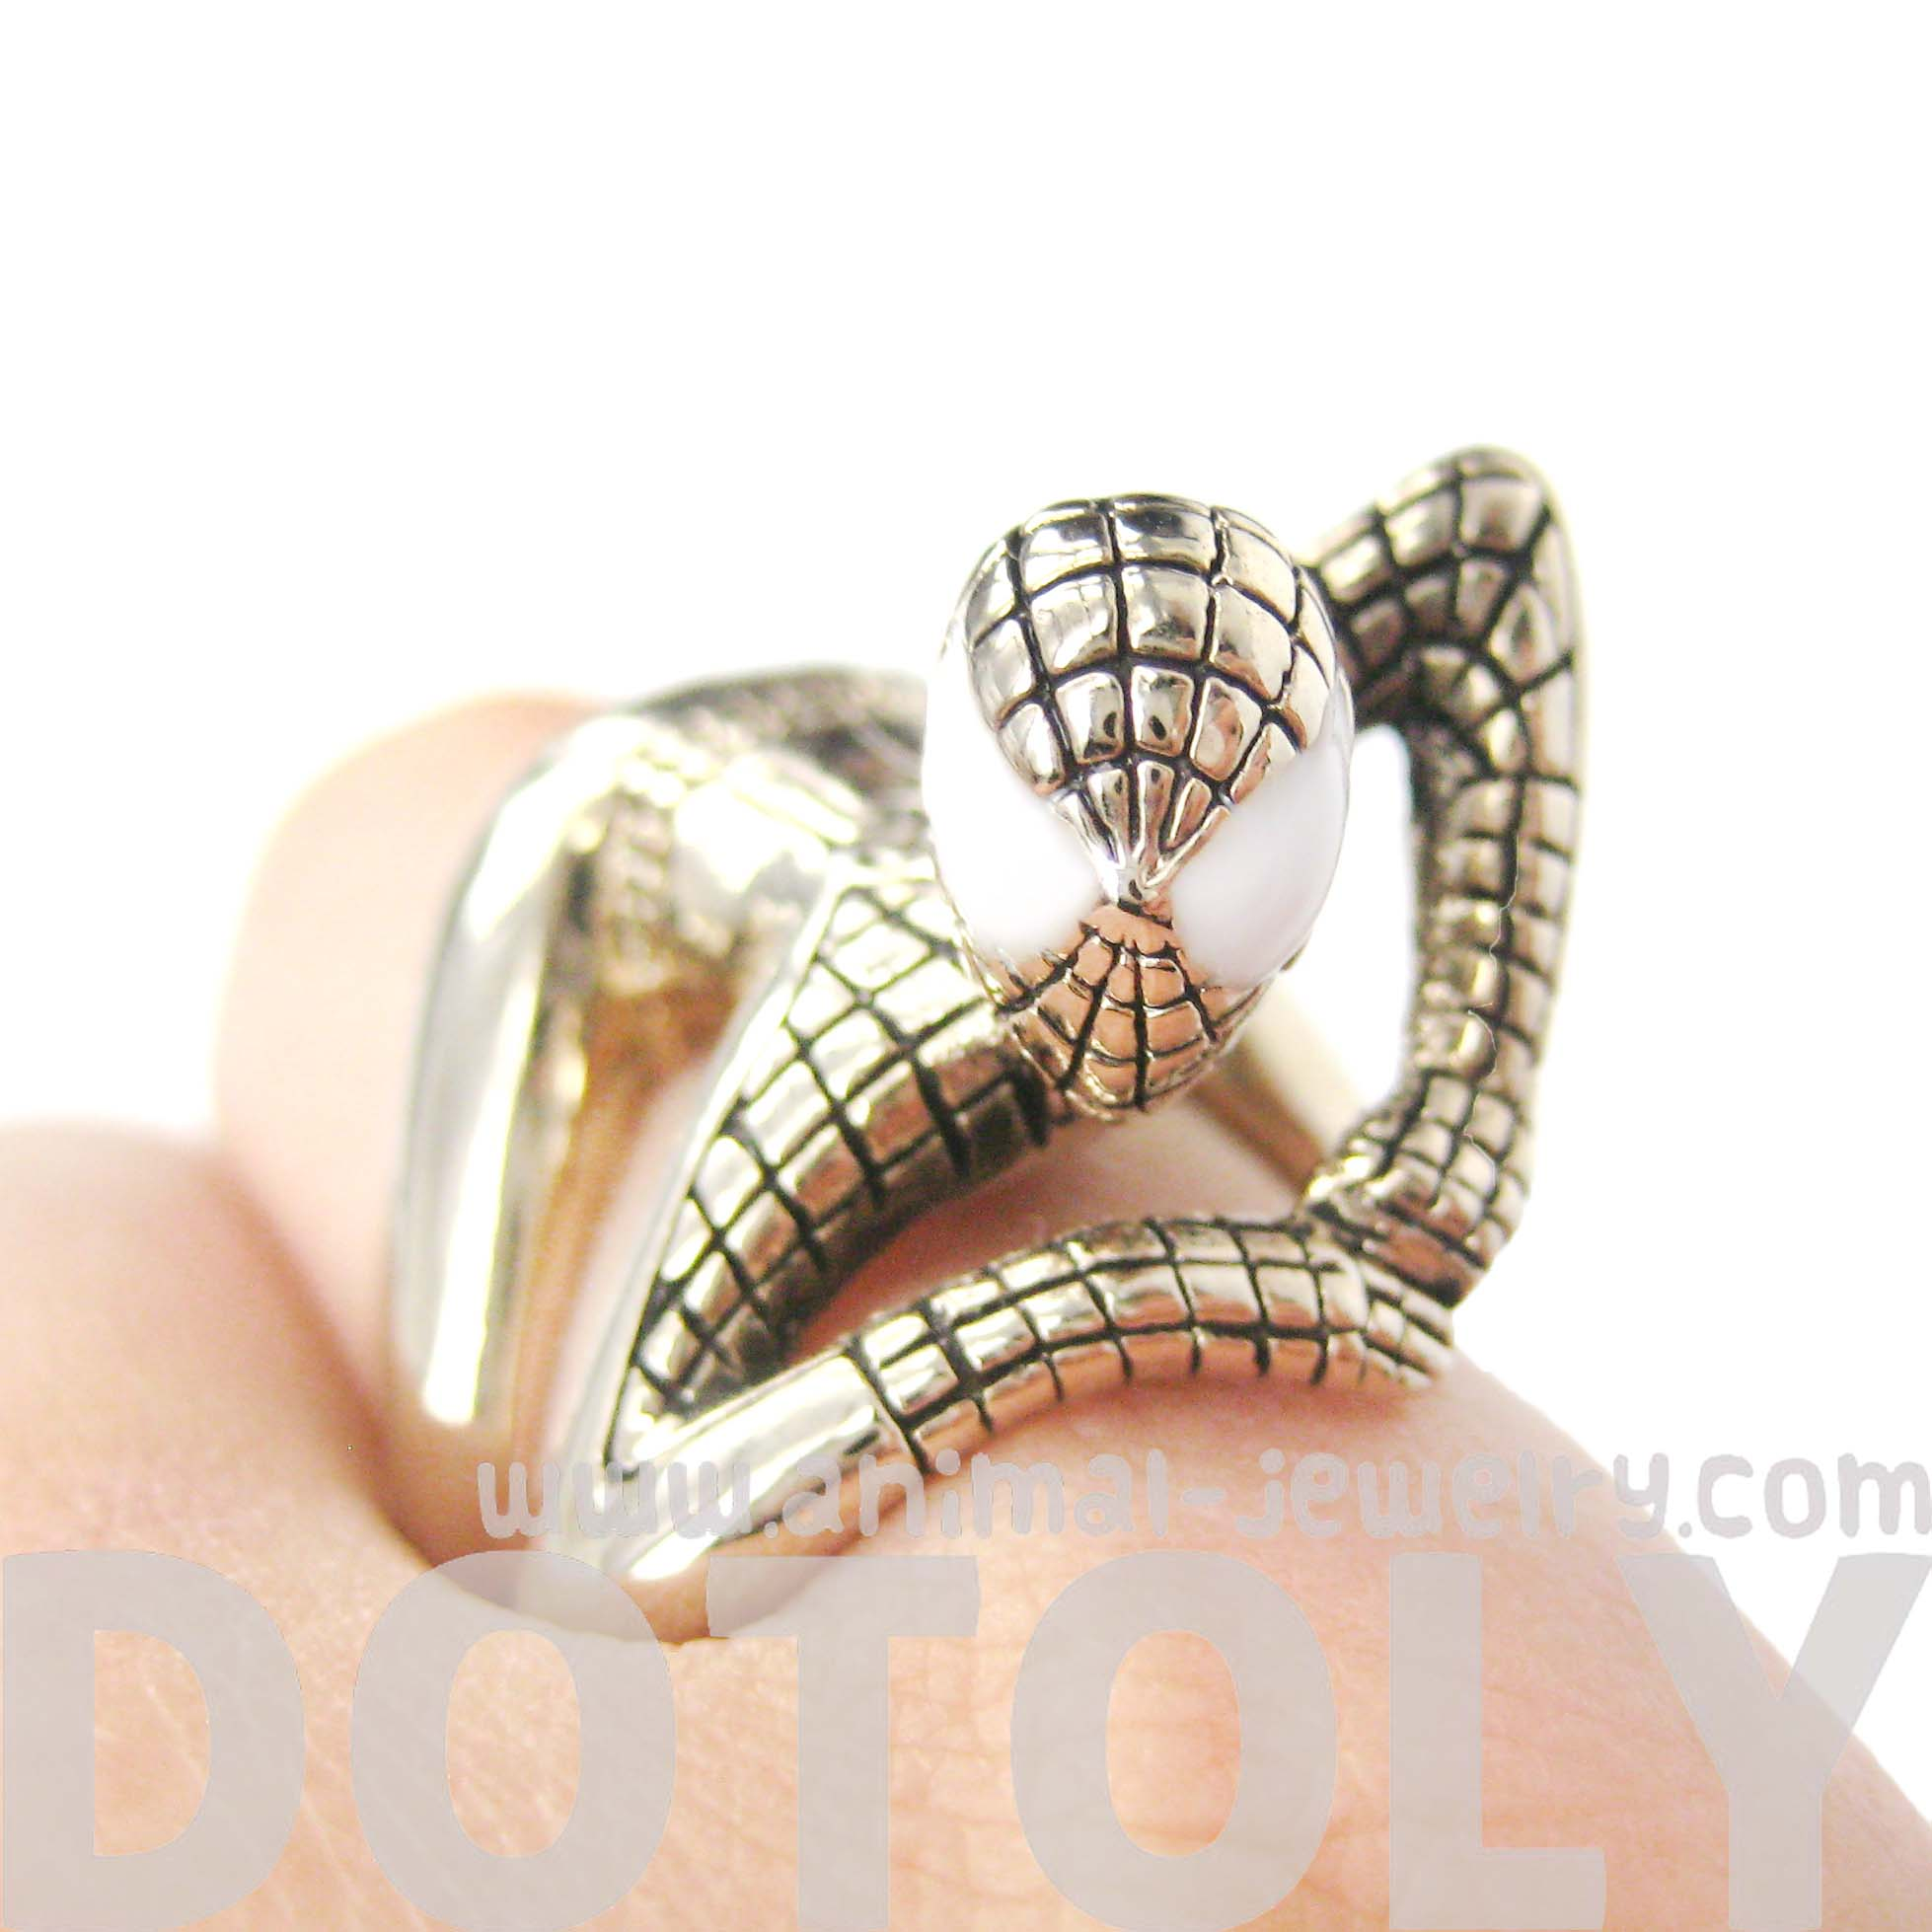 Spiderman Shaped Wrap Around Ring In Shiny Gold Us Size 8 And 9 Available